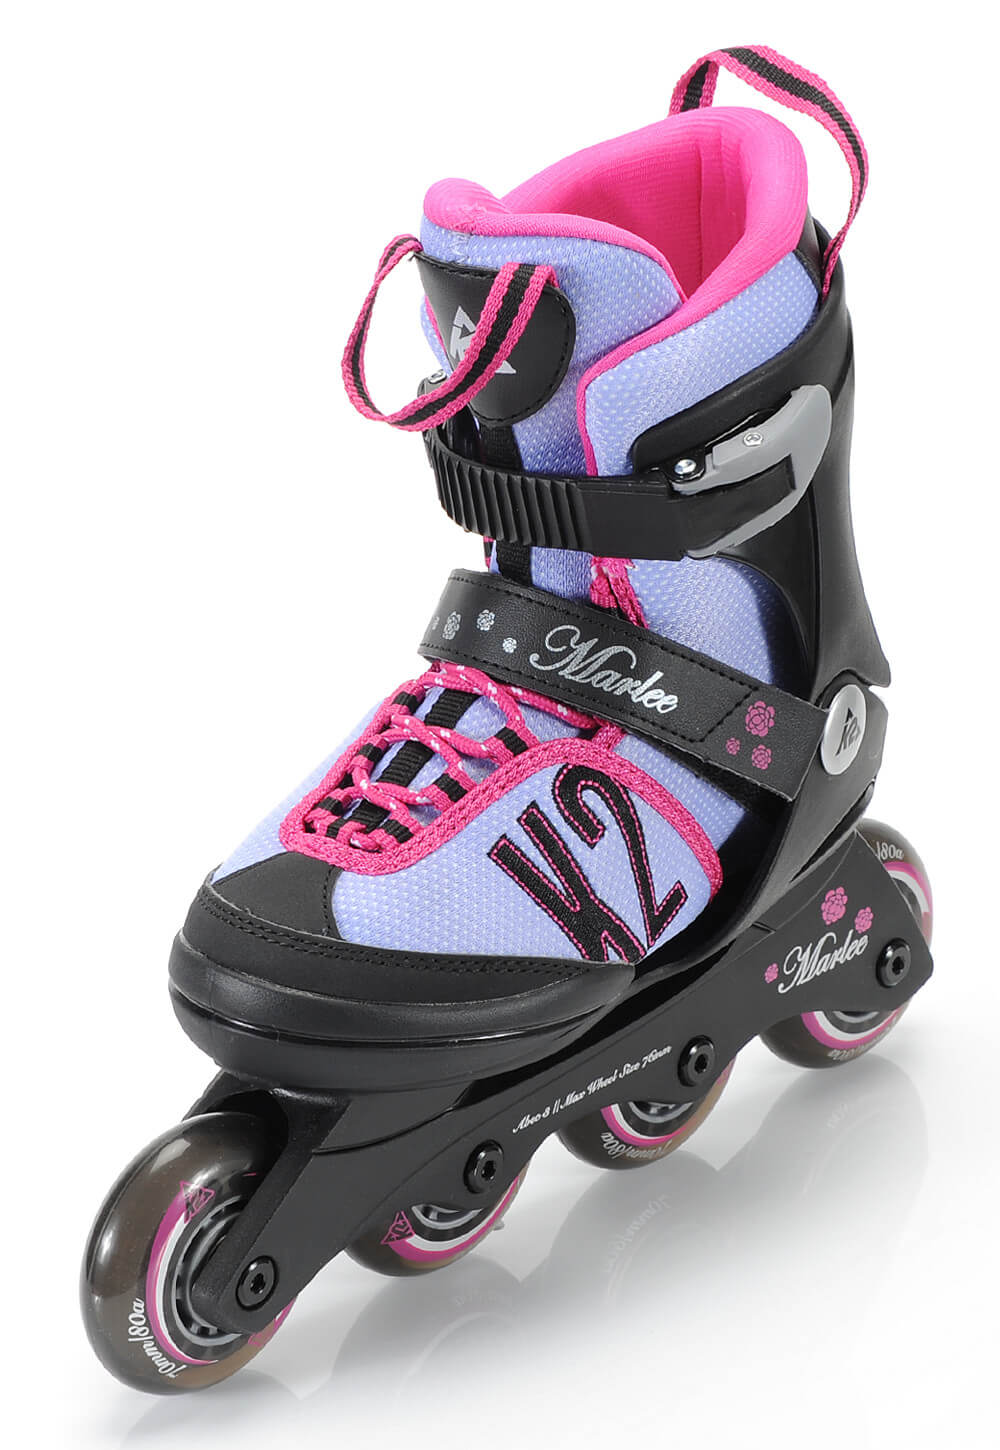 Best Roller Skate Wheels For Indoor